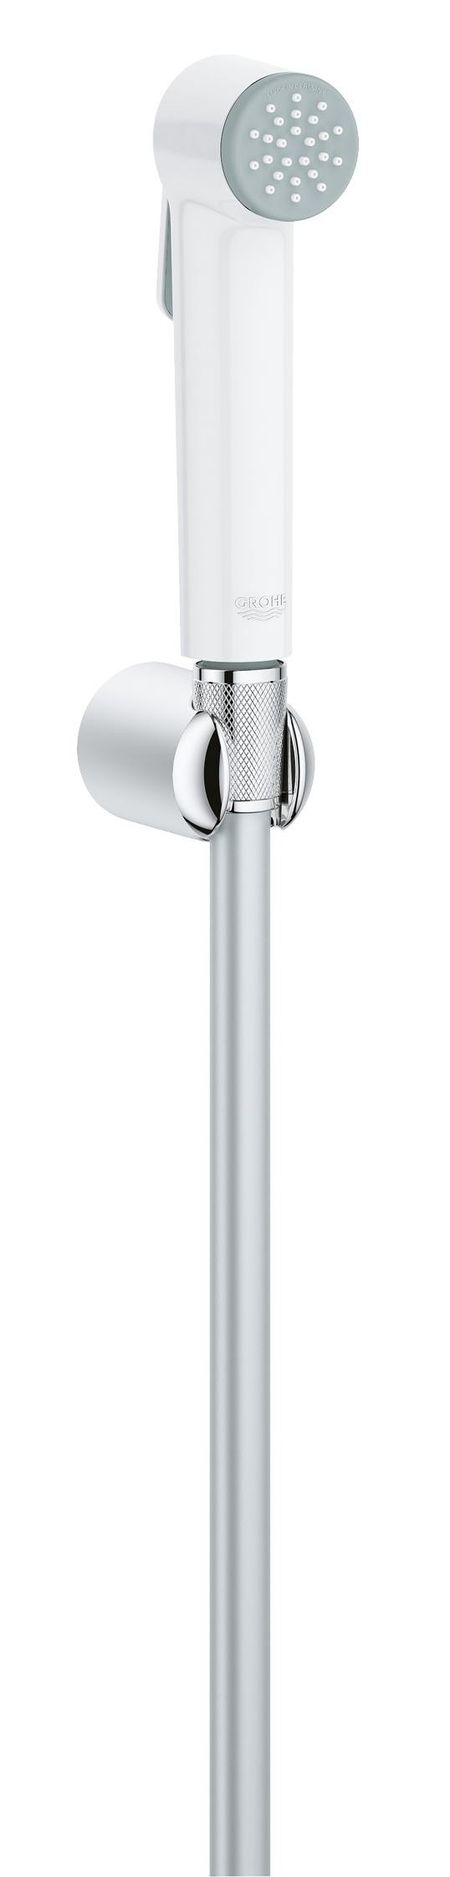 Набор Grohe Tempesta-f 26355il0